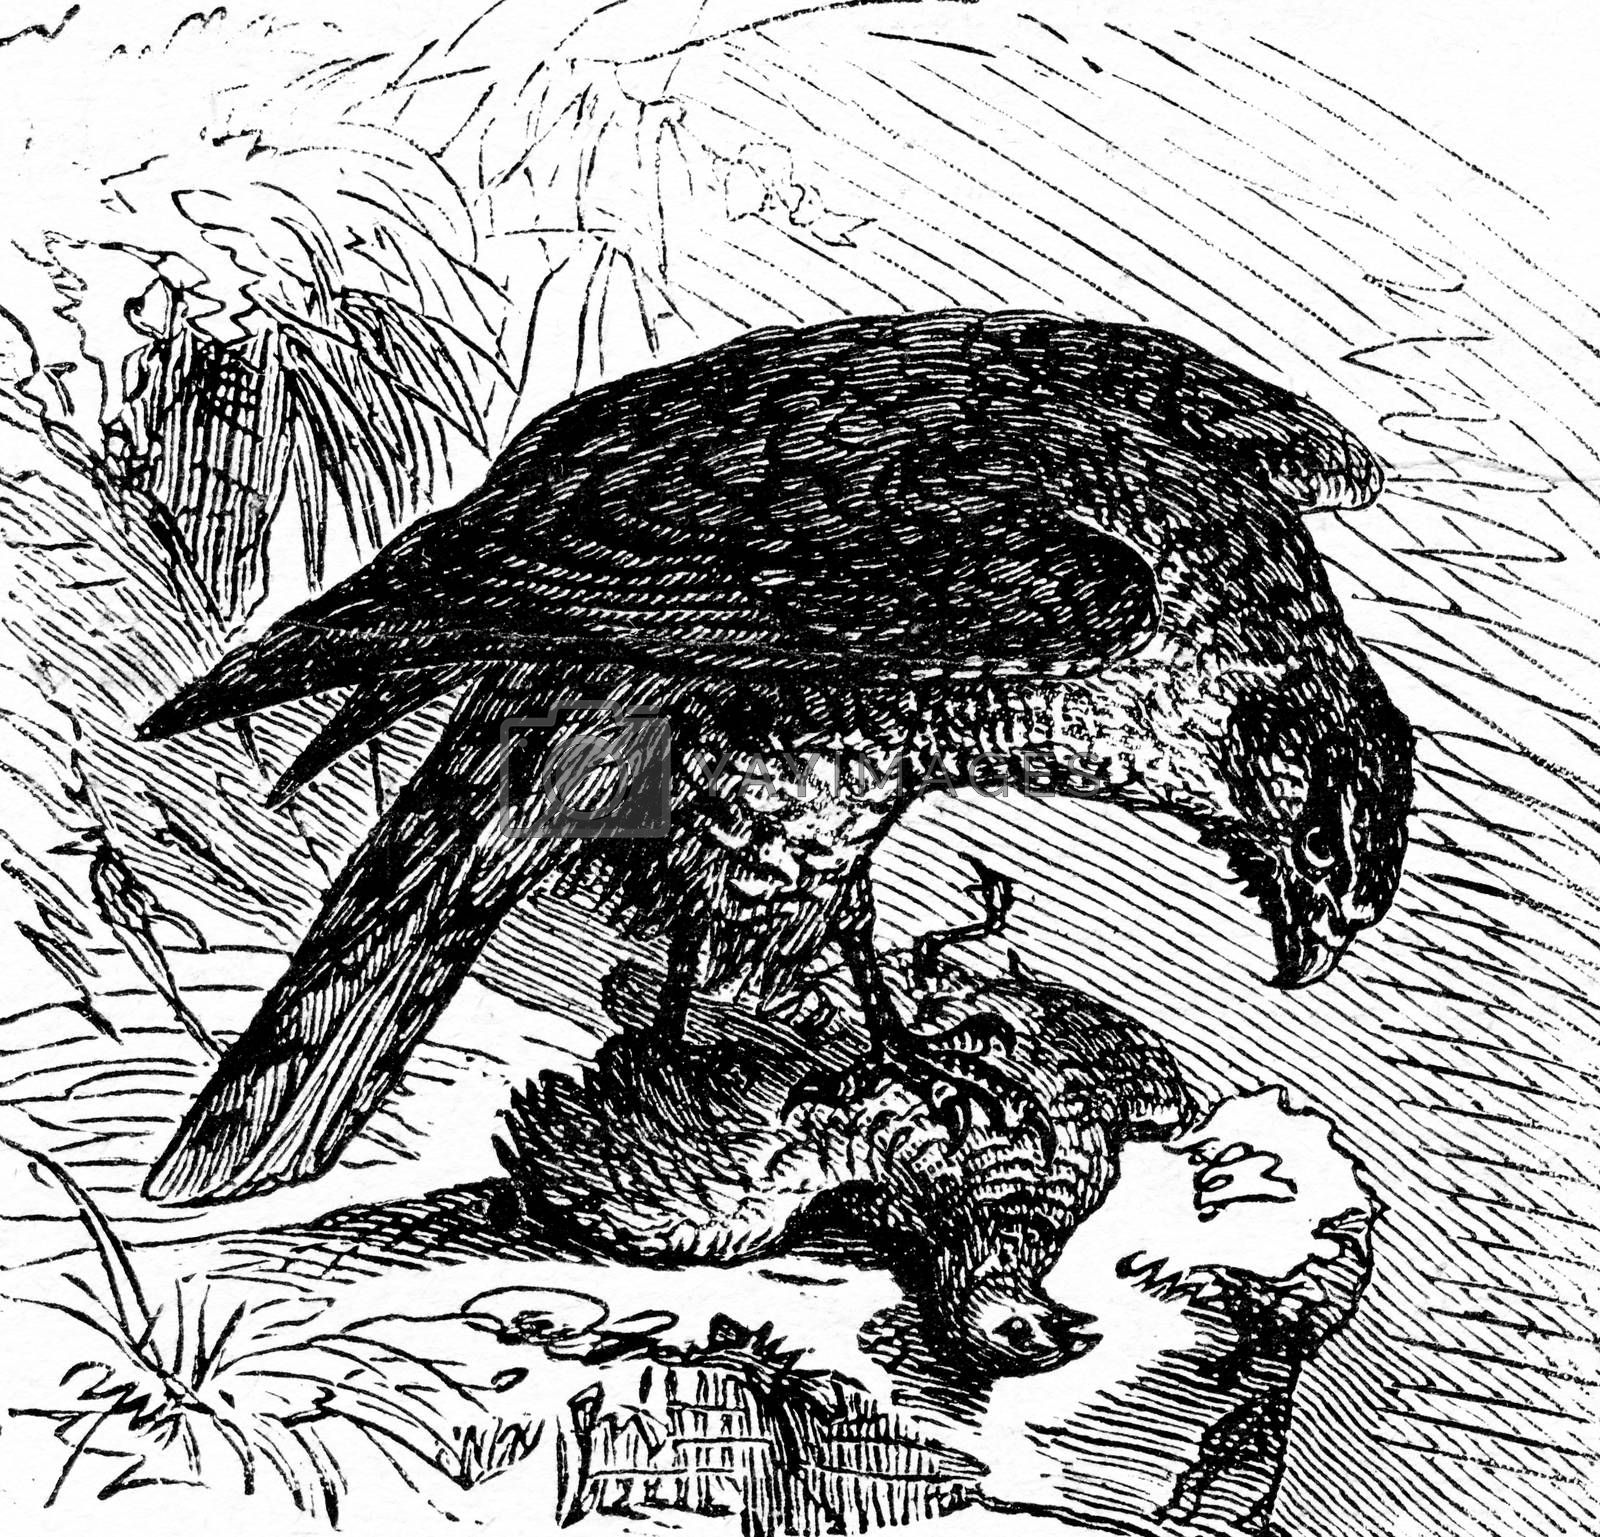 Goshawk, vintage engraved illustration. La Vie dans la nature, 1890.